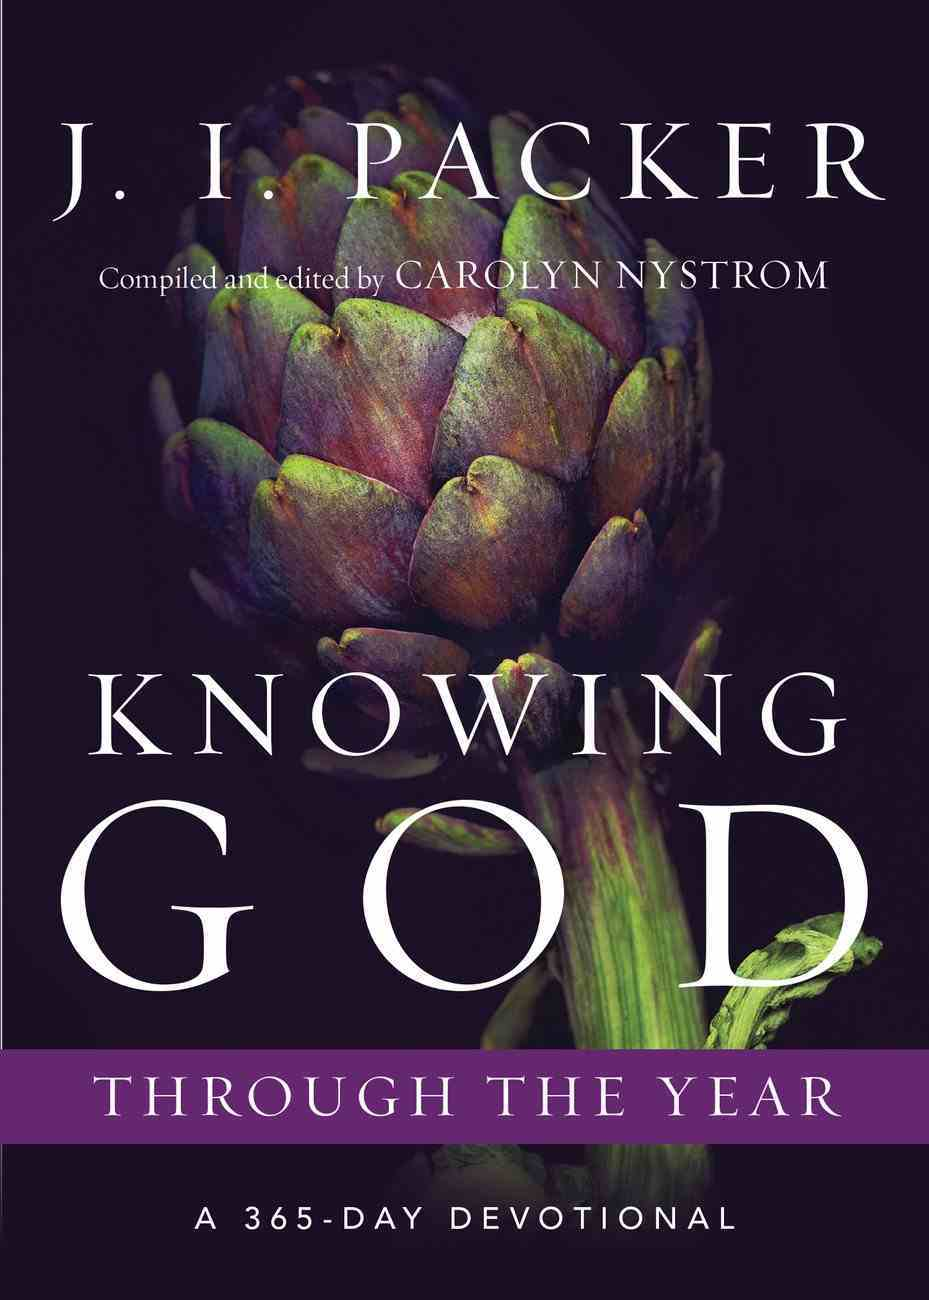 Knowing God Through the Year (Through The Year Devotionals Series) eBook